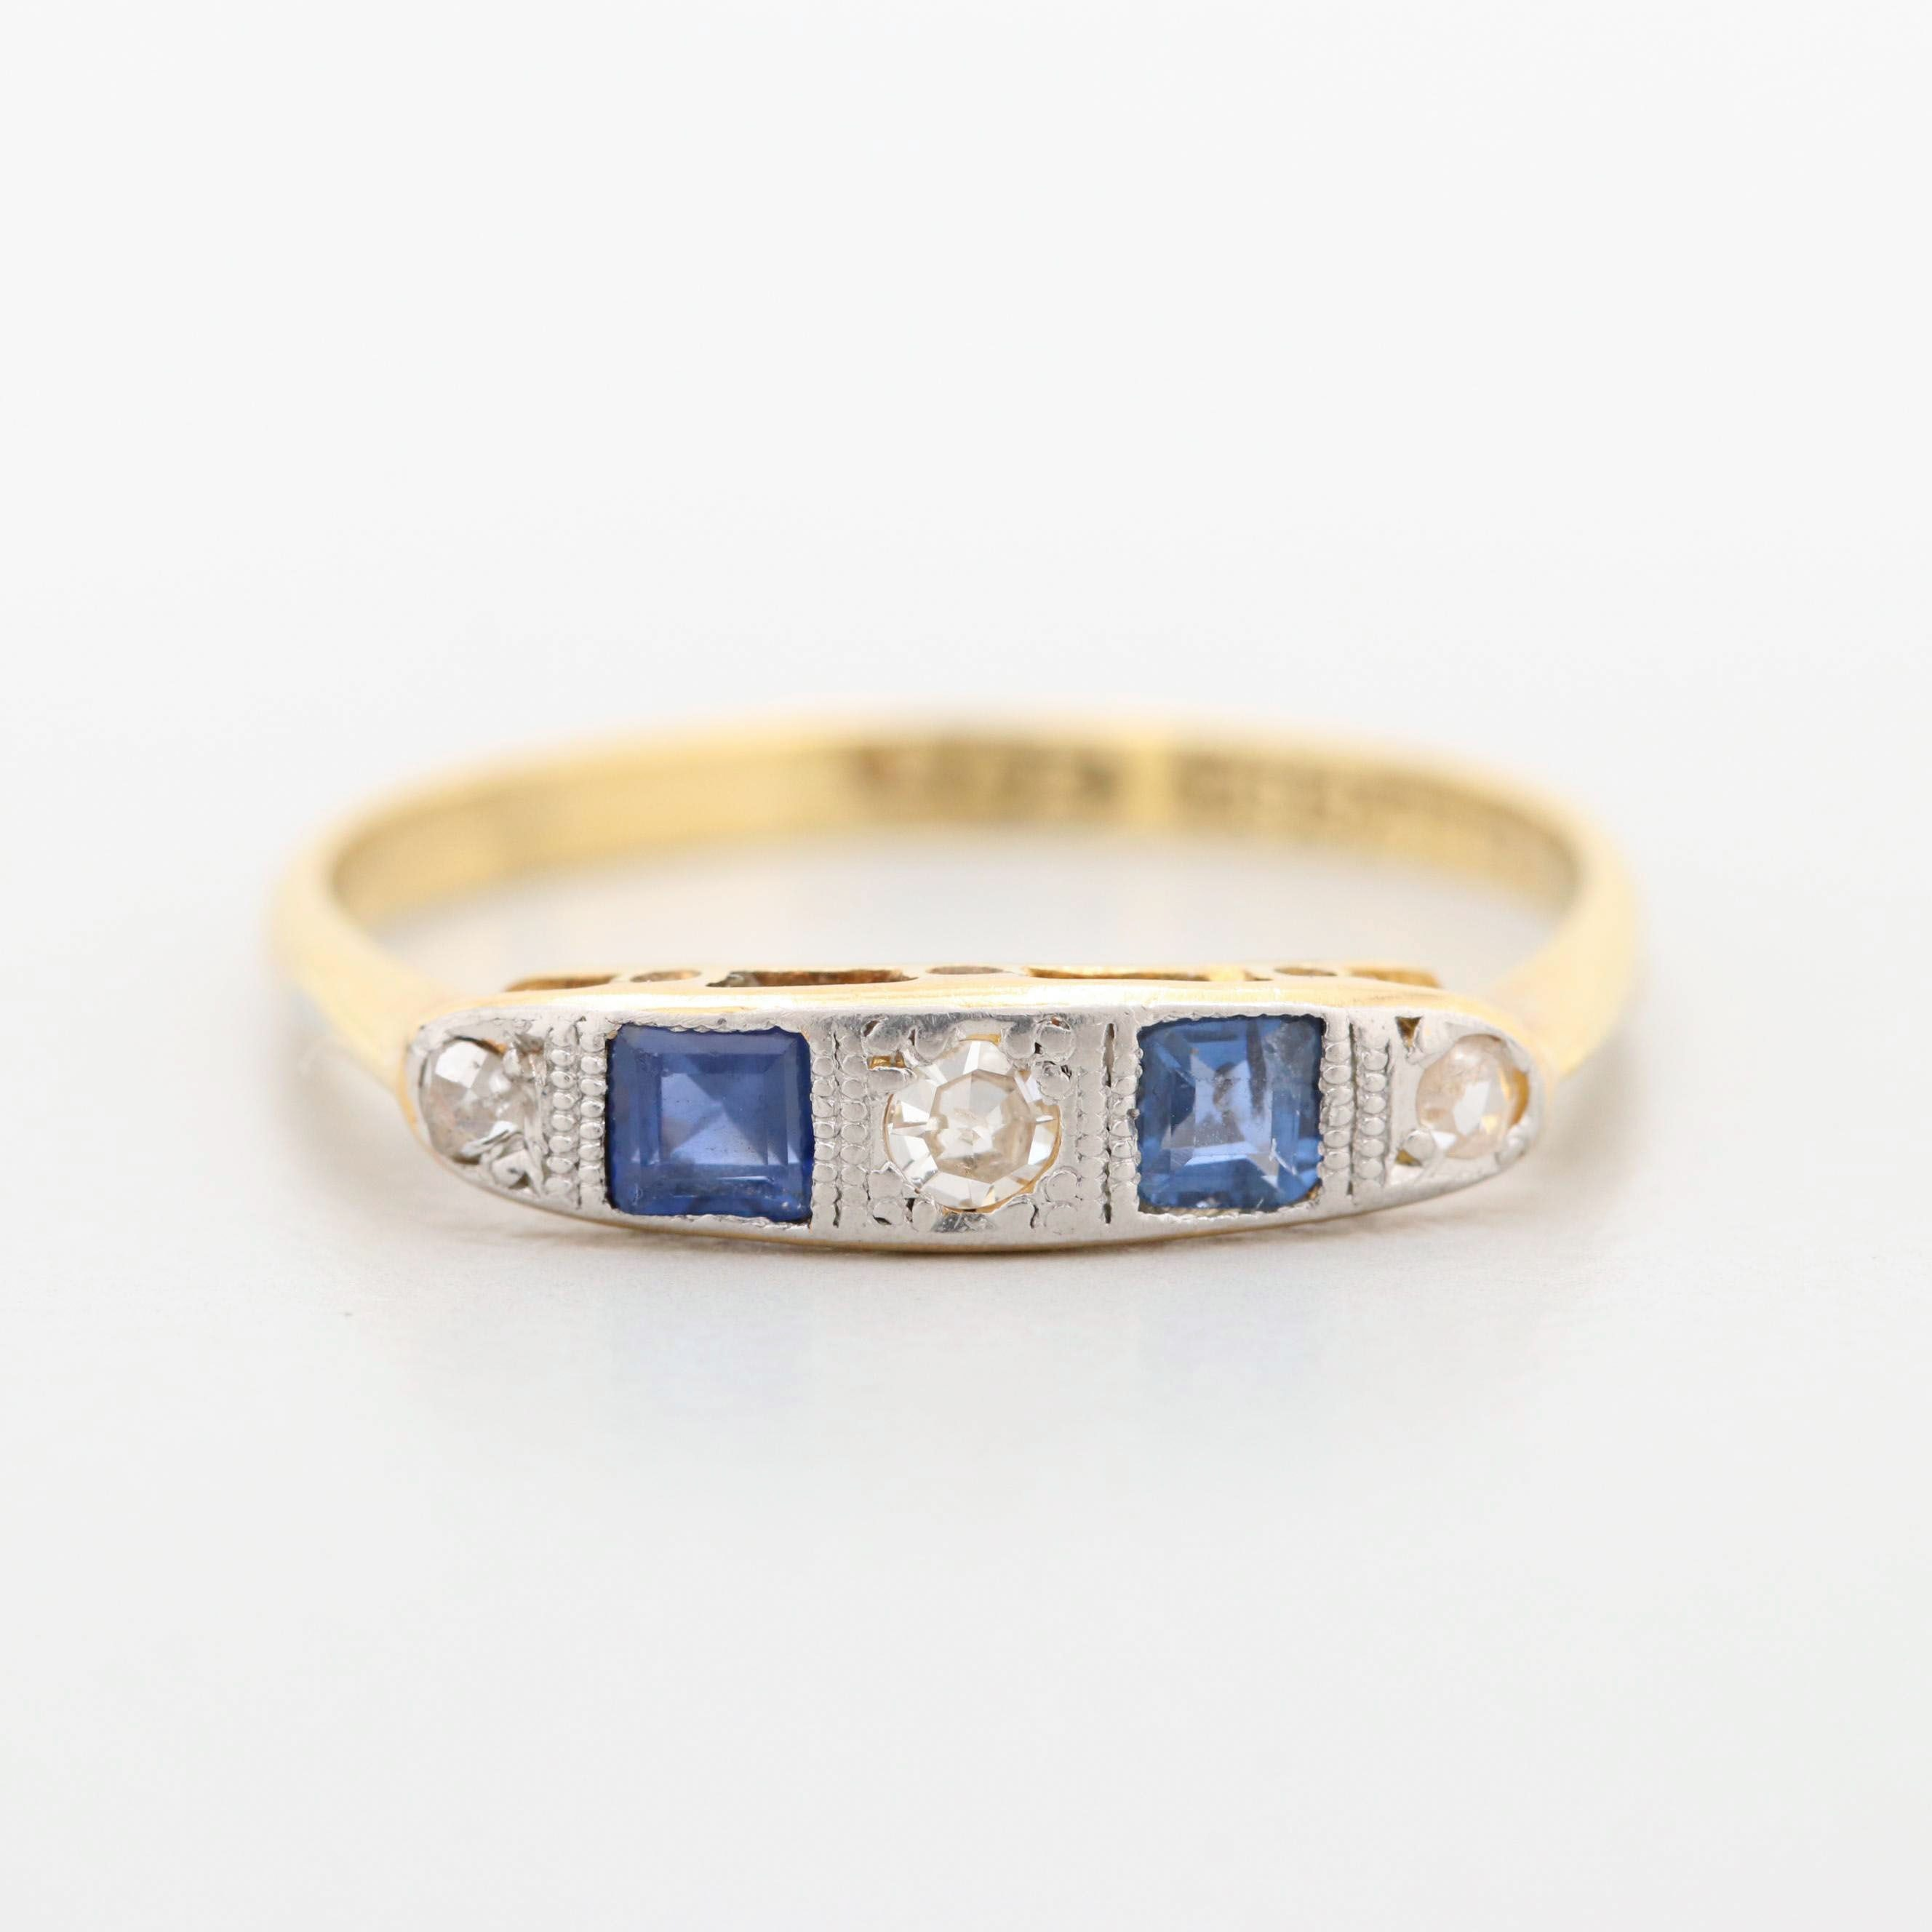 Art Deco 18K Yellow Gold Sapphire and Diamond Ring with Platinum Head